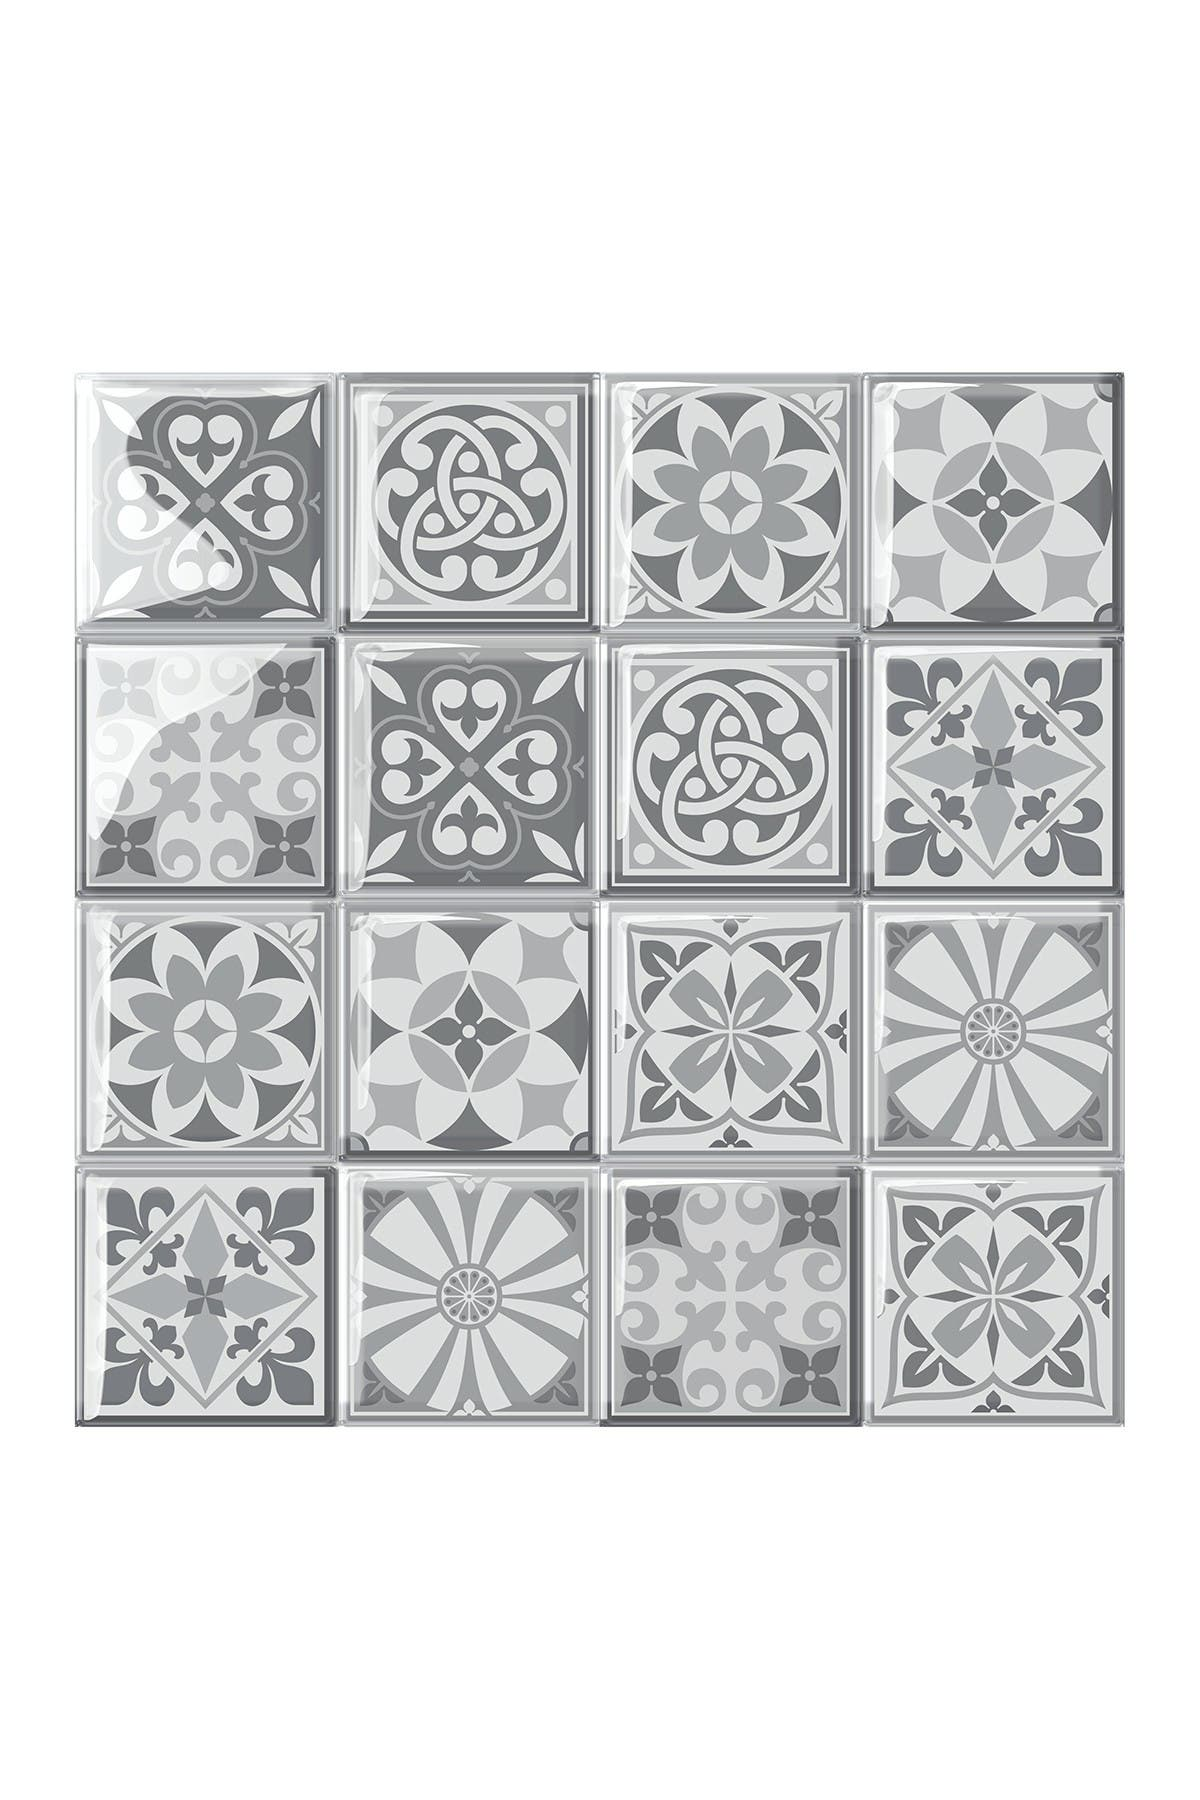 Image of WalPlus Purbeck Stone Glossy 3D Sticker Tile 15.4 cm (6 in) - 16pcs in a pack